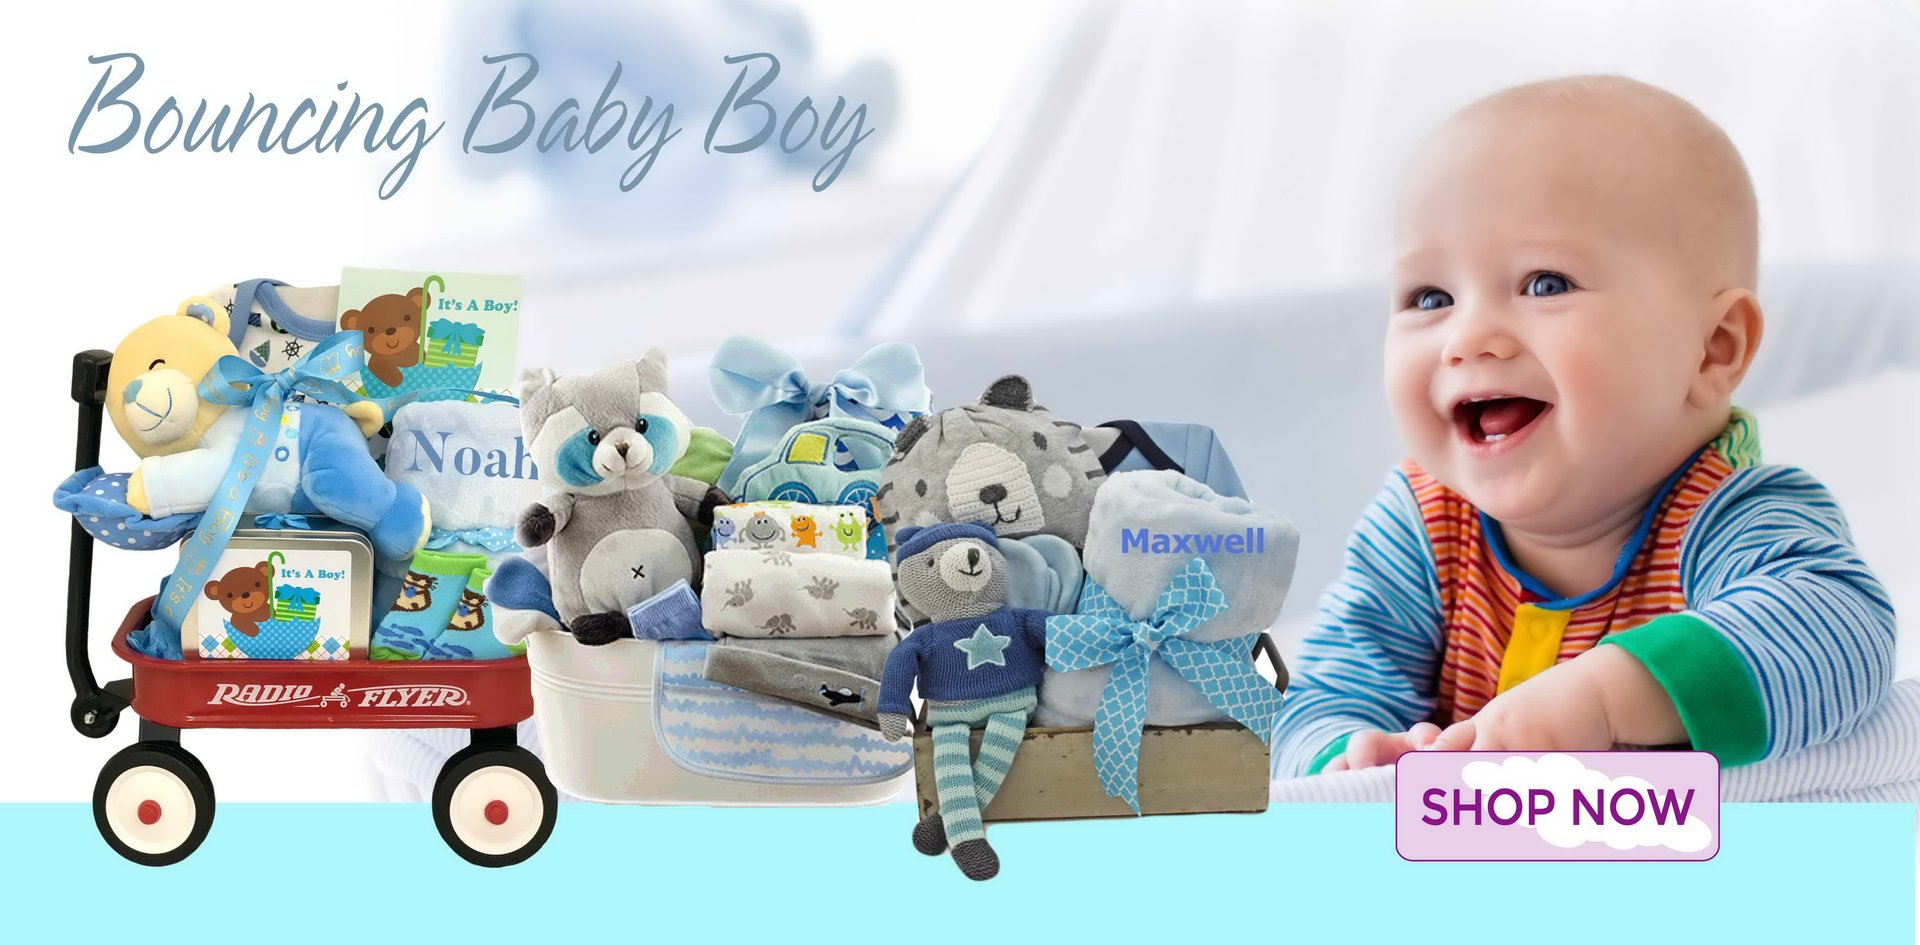 Shop Christmas Baby Gifts